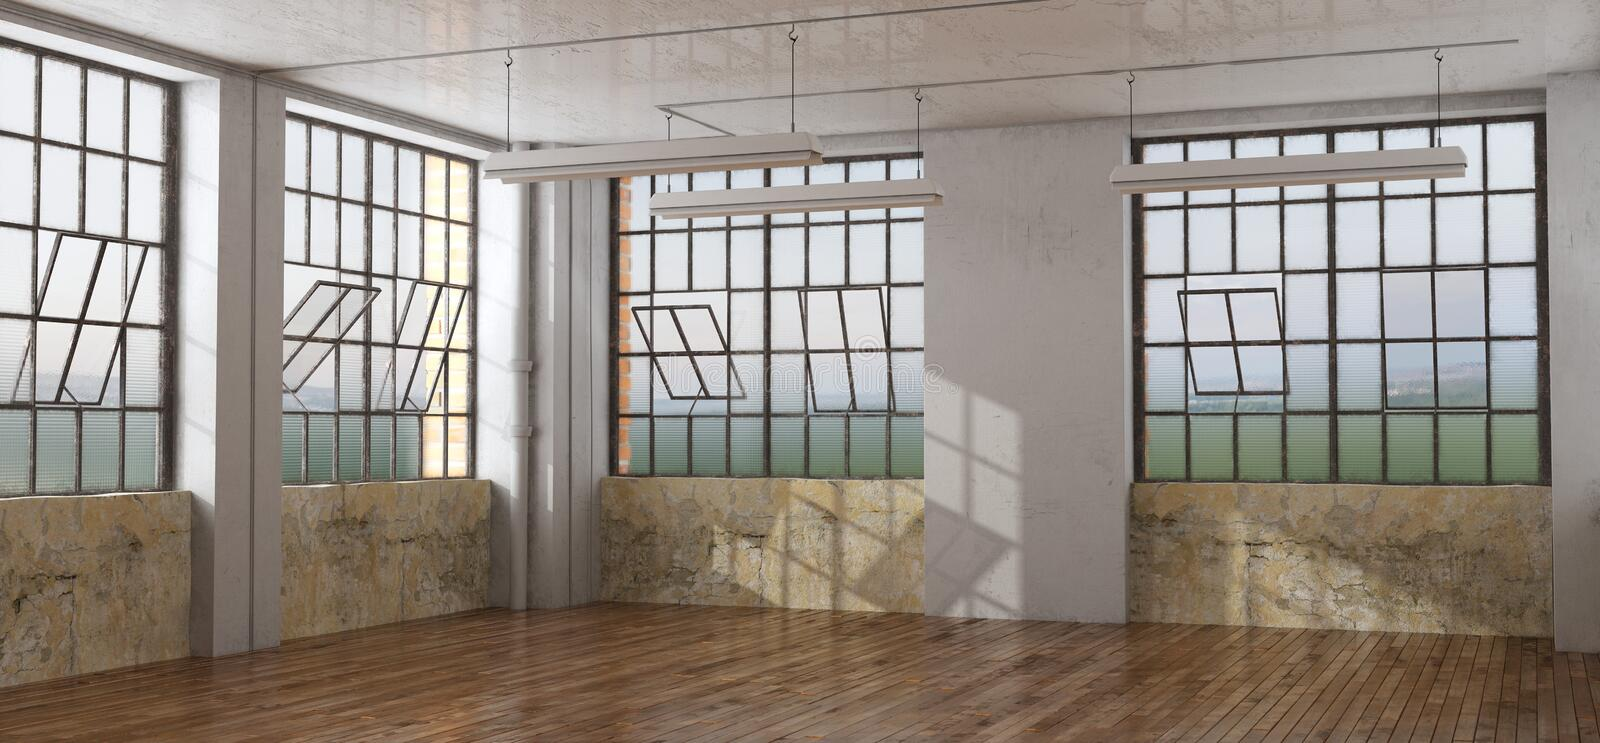 Old room in a loft stock photo